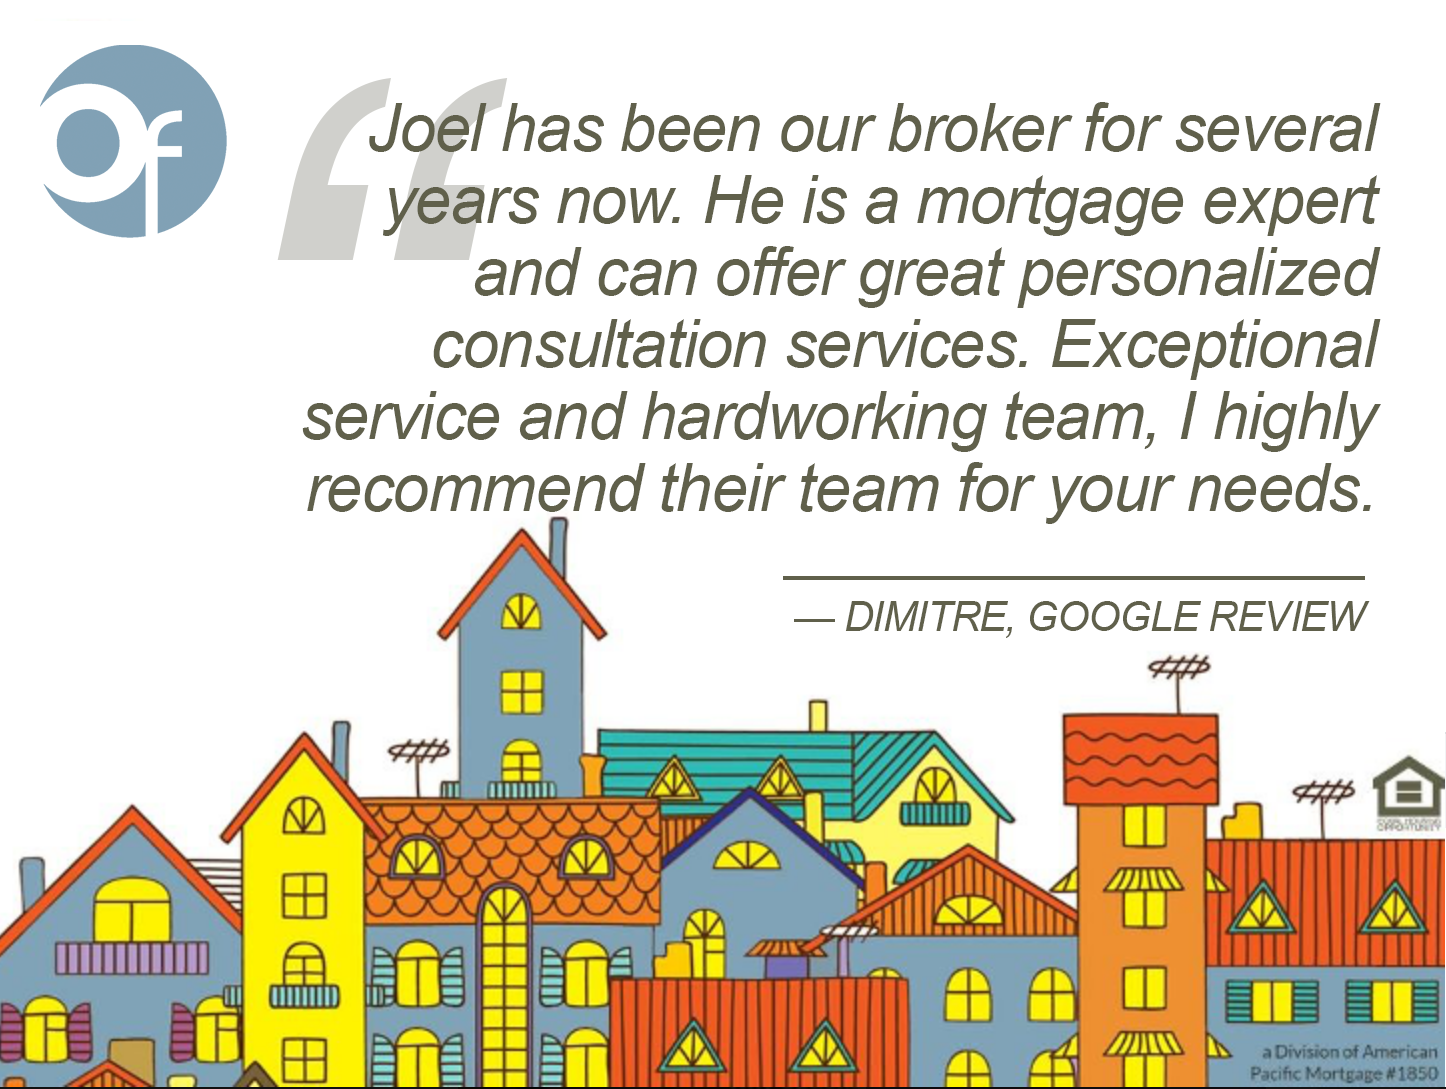 Joel has been our broker for several years now. He is a mortgage expert and can offer great personalized consultation services. Exceptional service and hardworking team, I highly recommend their team for your needs.